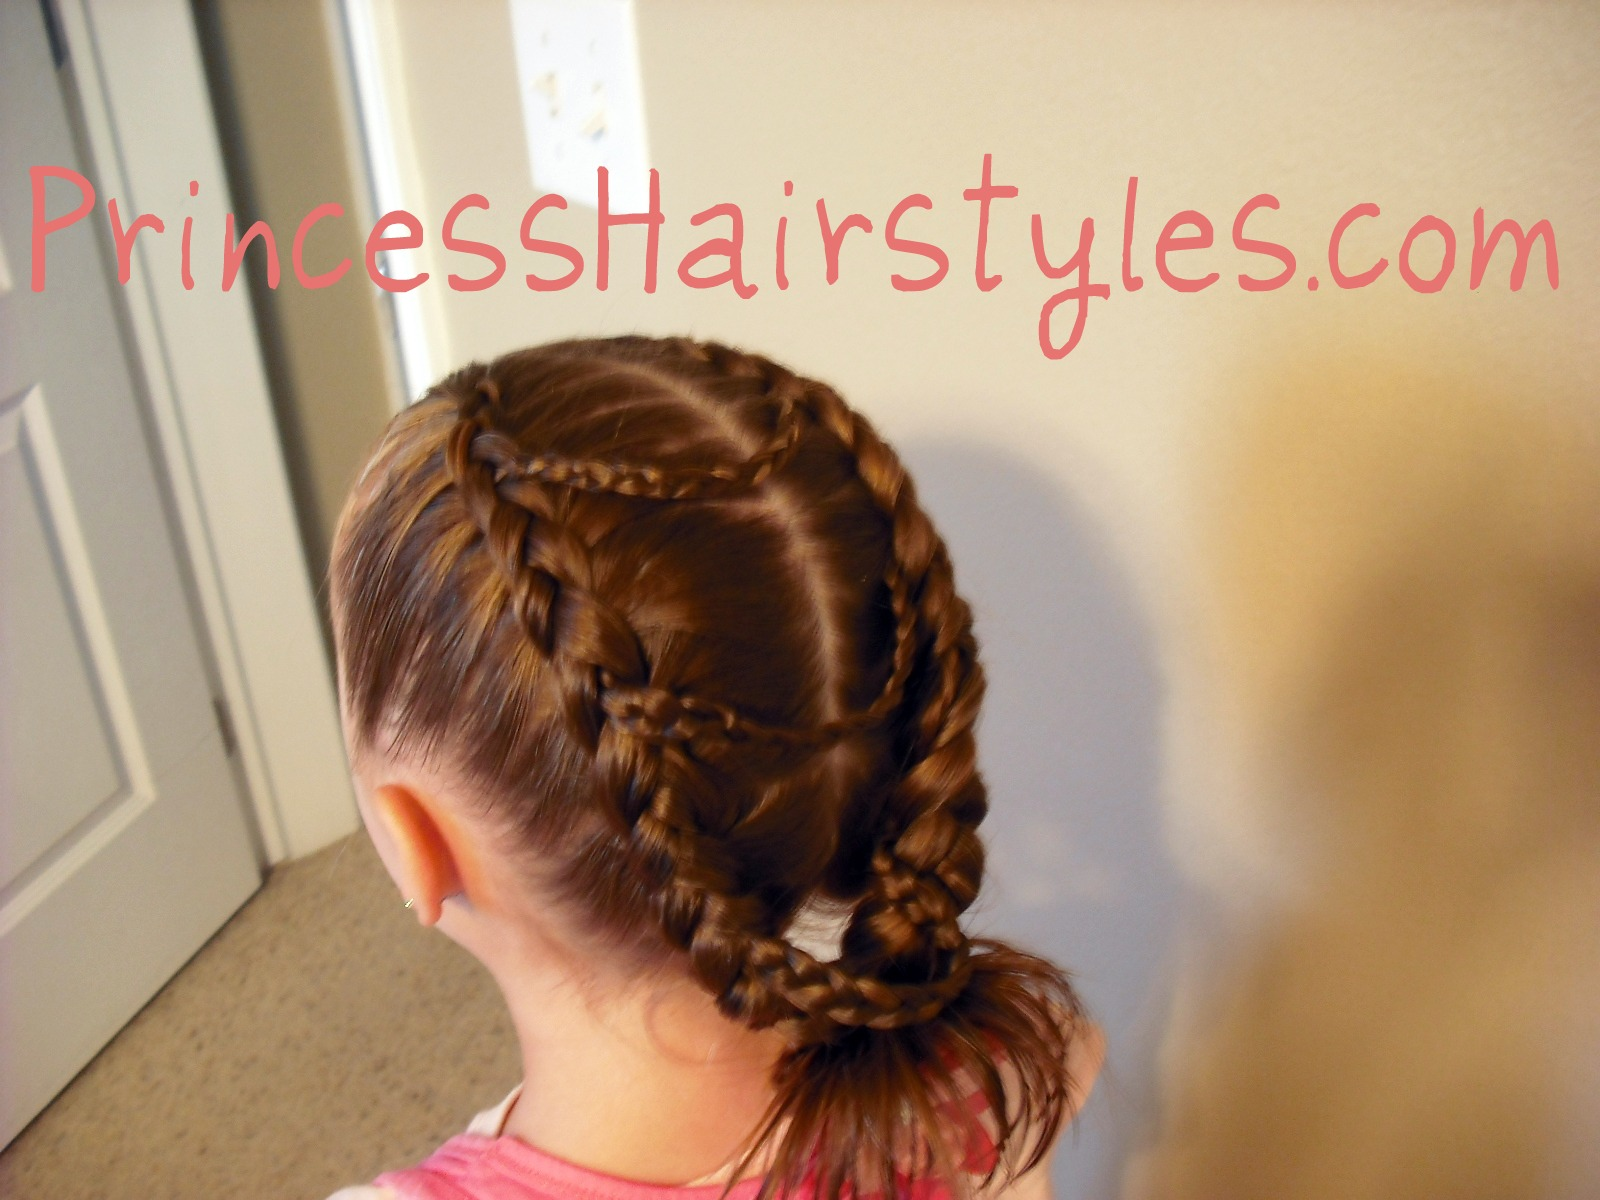 Fancy Princess Braids - Hairstyles For Girls - Princess ...